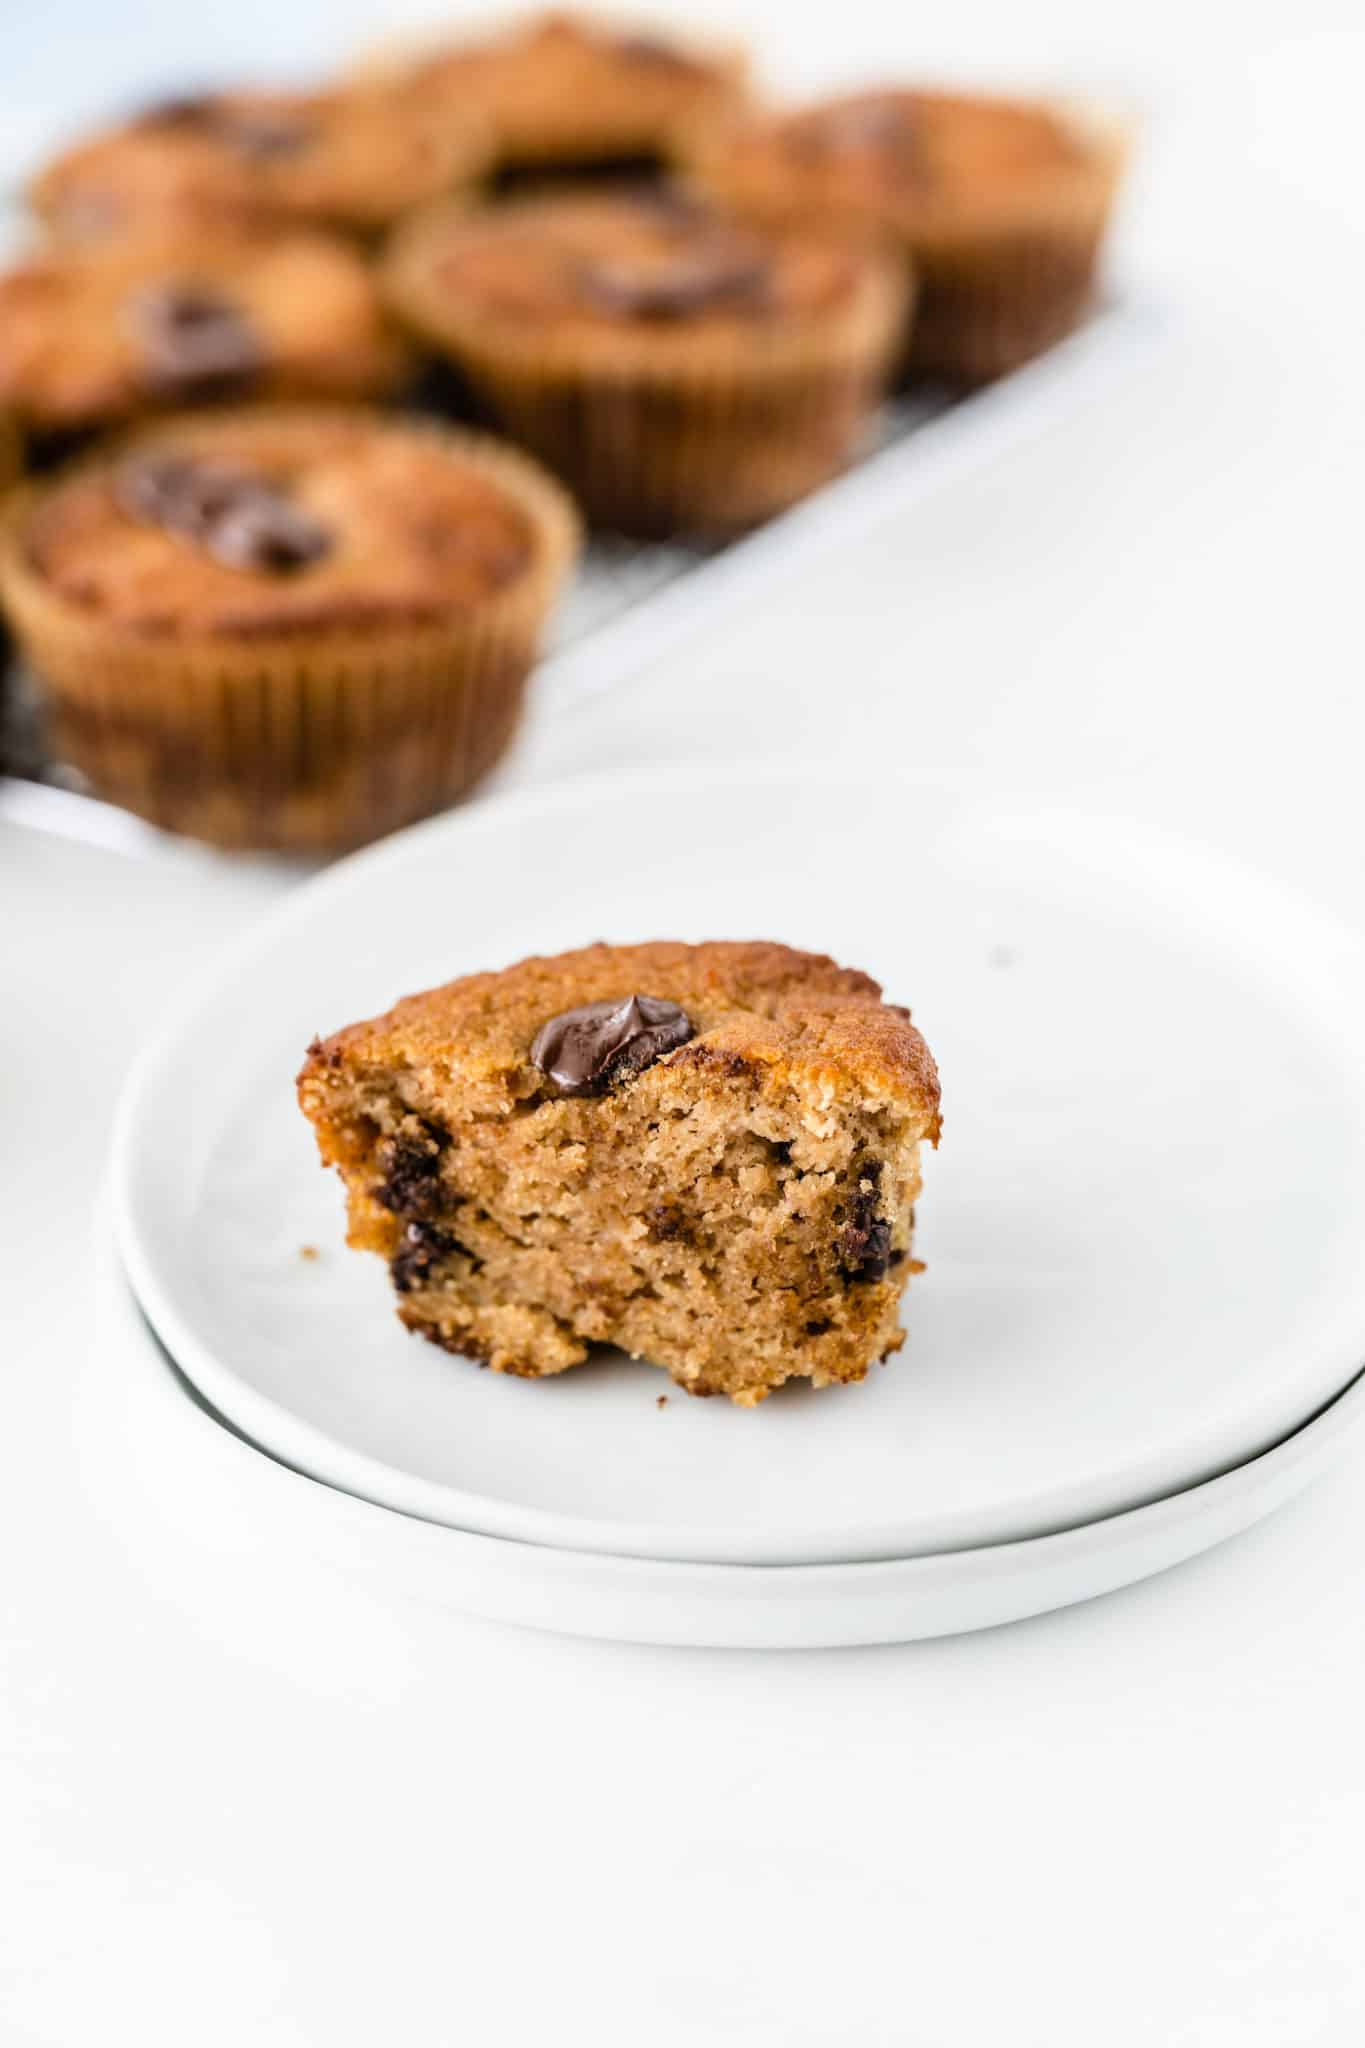 coconut flour chocolate chip muffin with a bite taken out of it